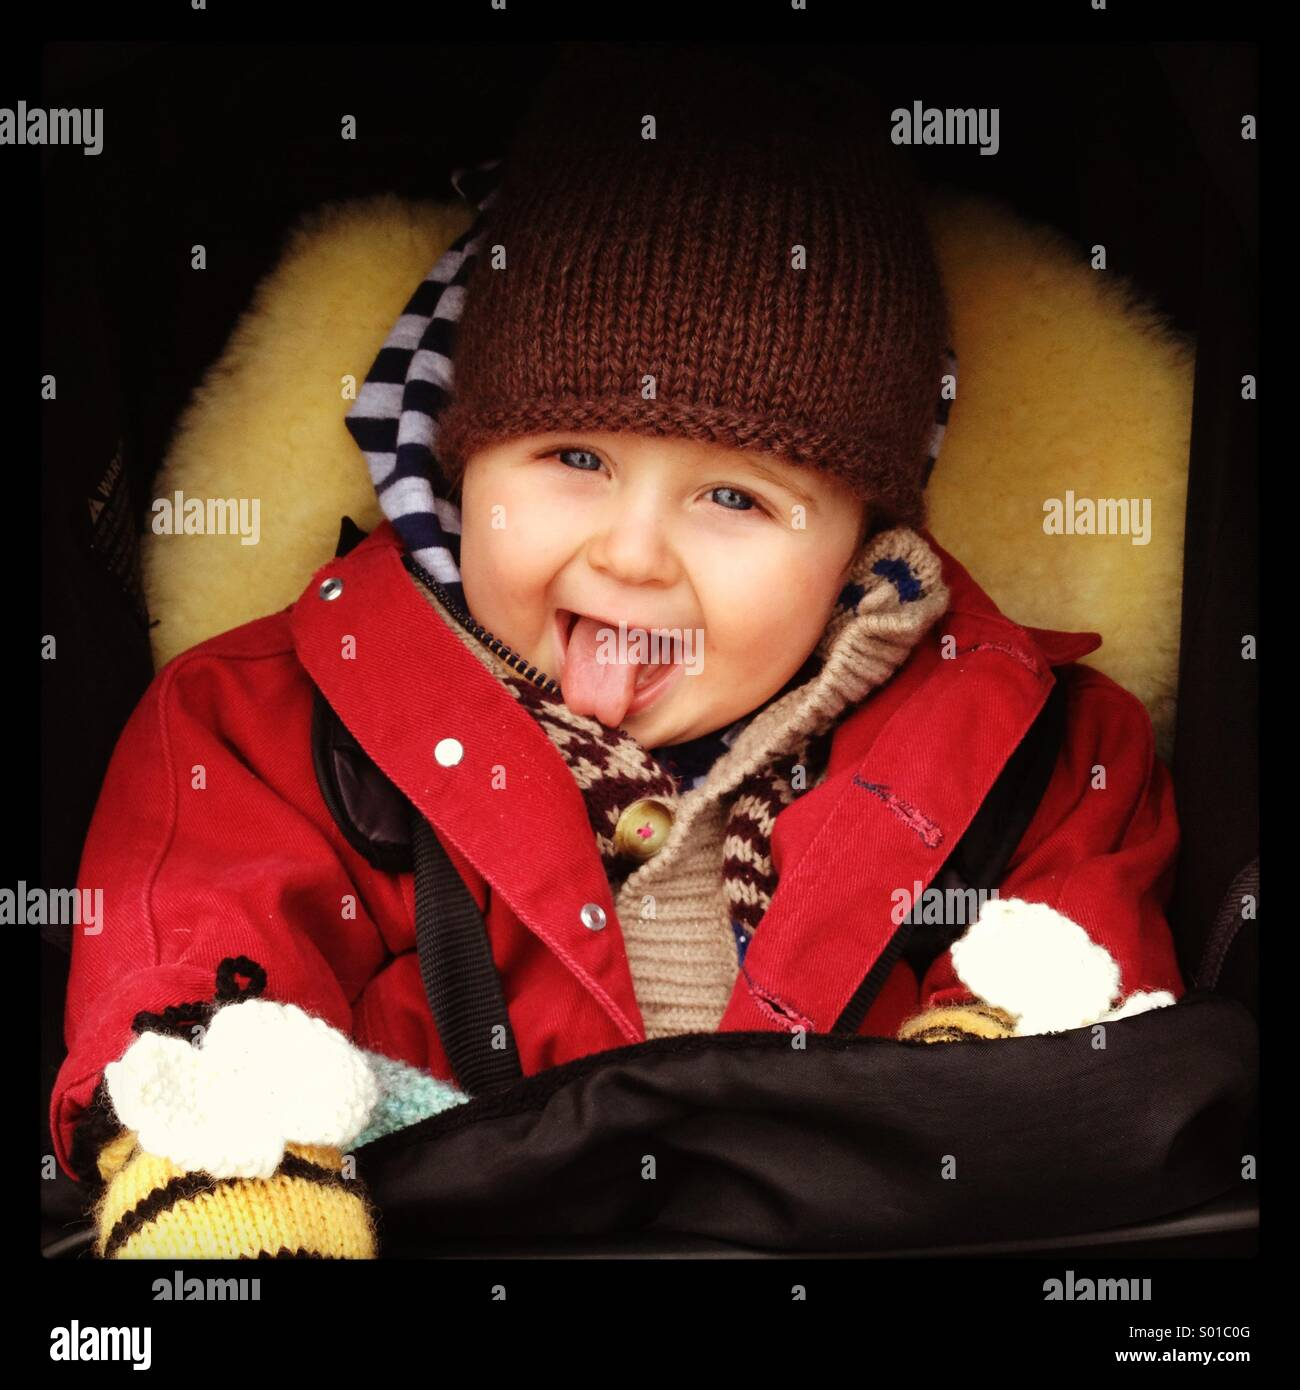 Baby poking his tongue out - Stock Image